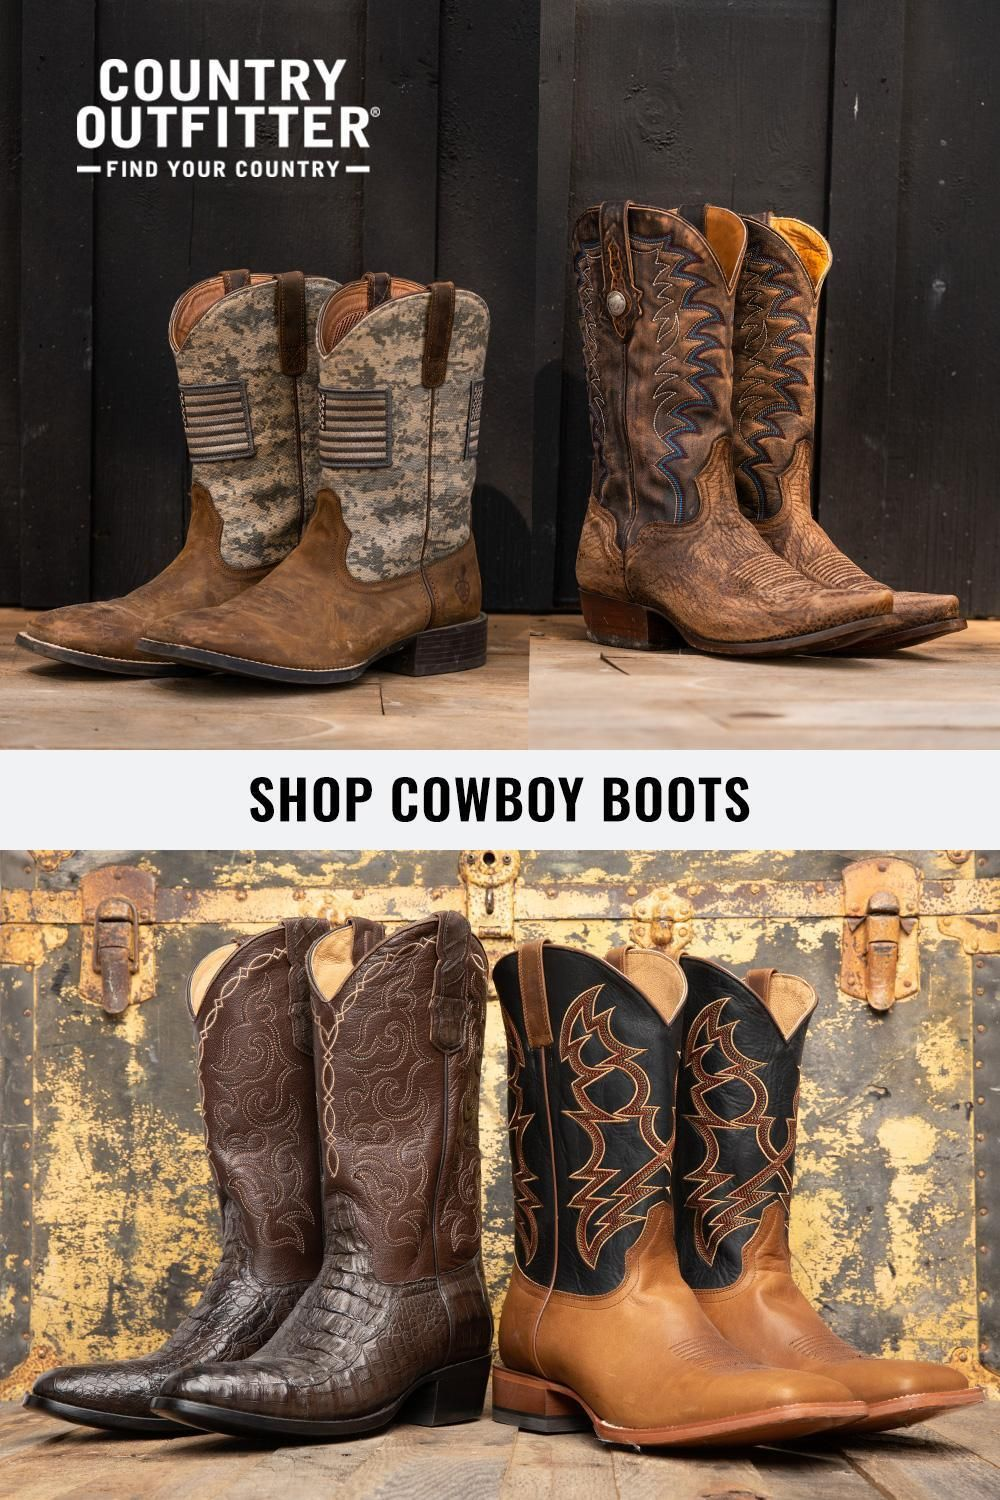 ec90d766fb8 Country Outfitter has the highest-quality men's cowboy boots in ...